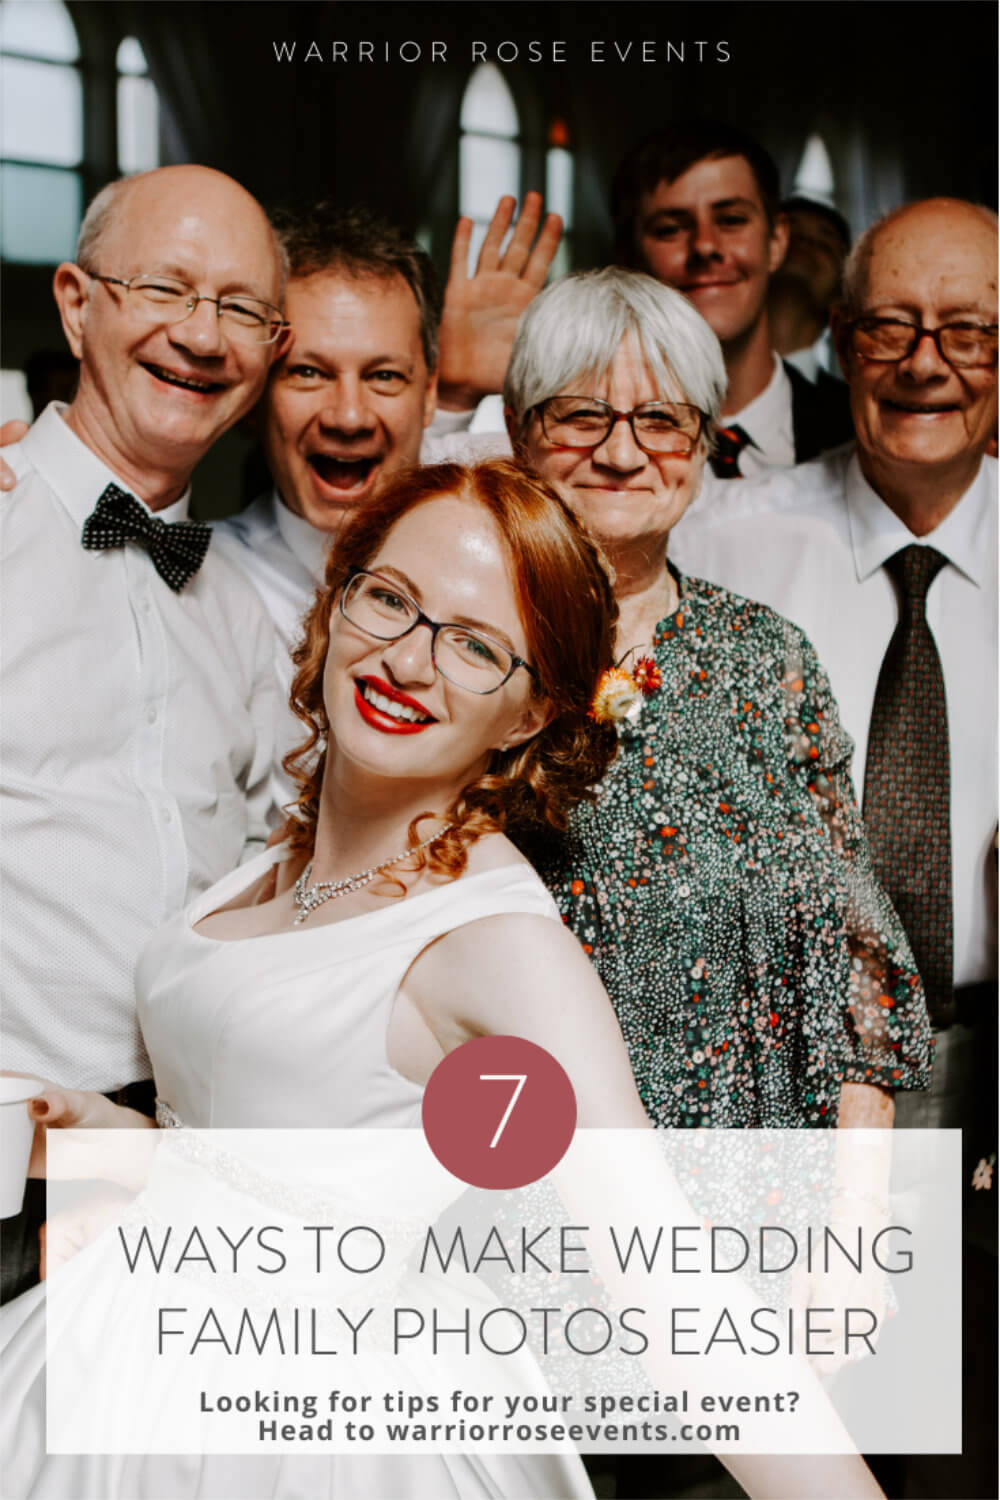 How to Make Family-Photos Easier at Your Wedding Best Wedding Day Tips and Tricks 5